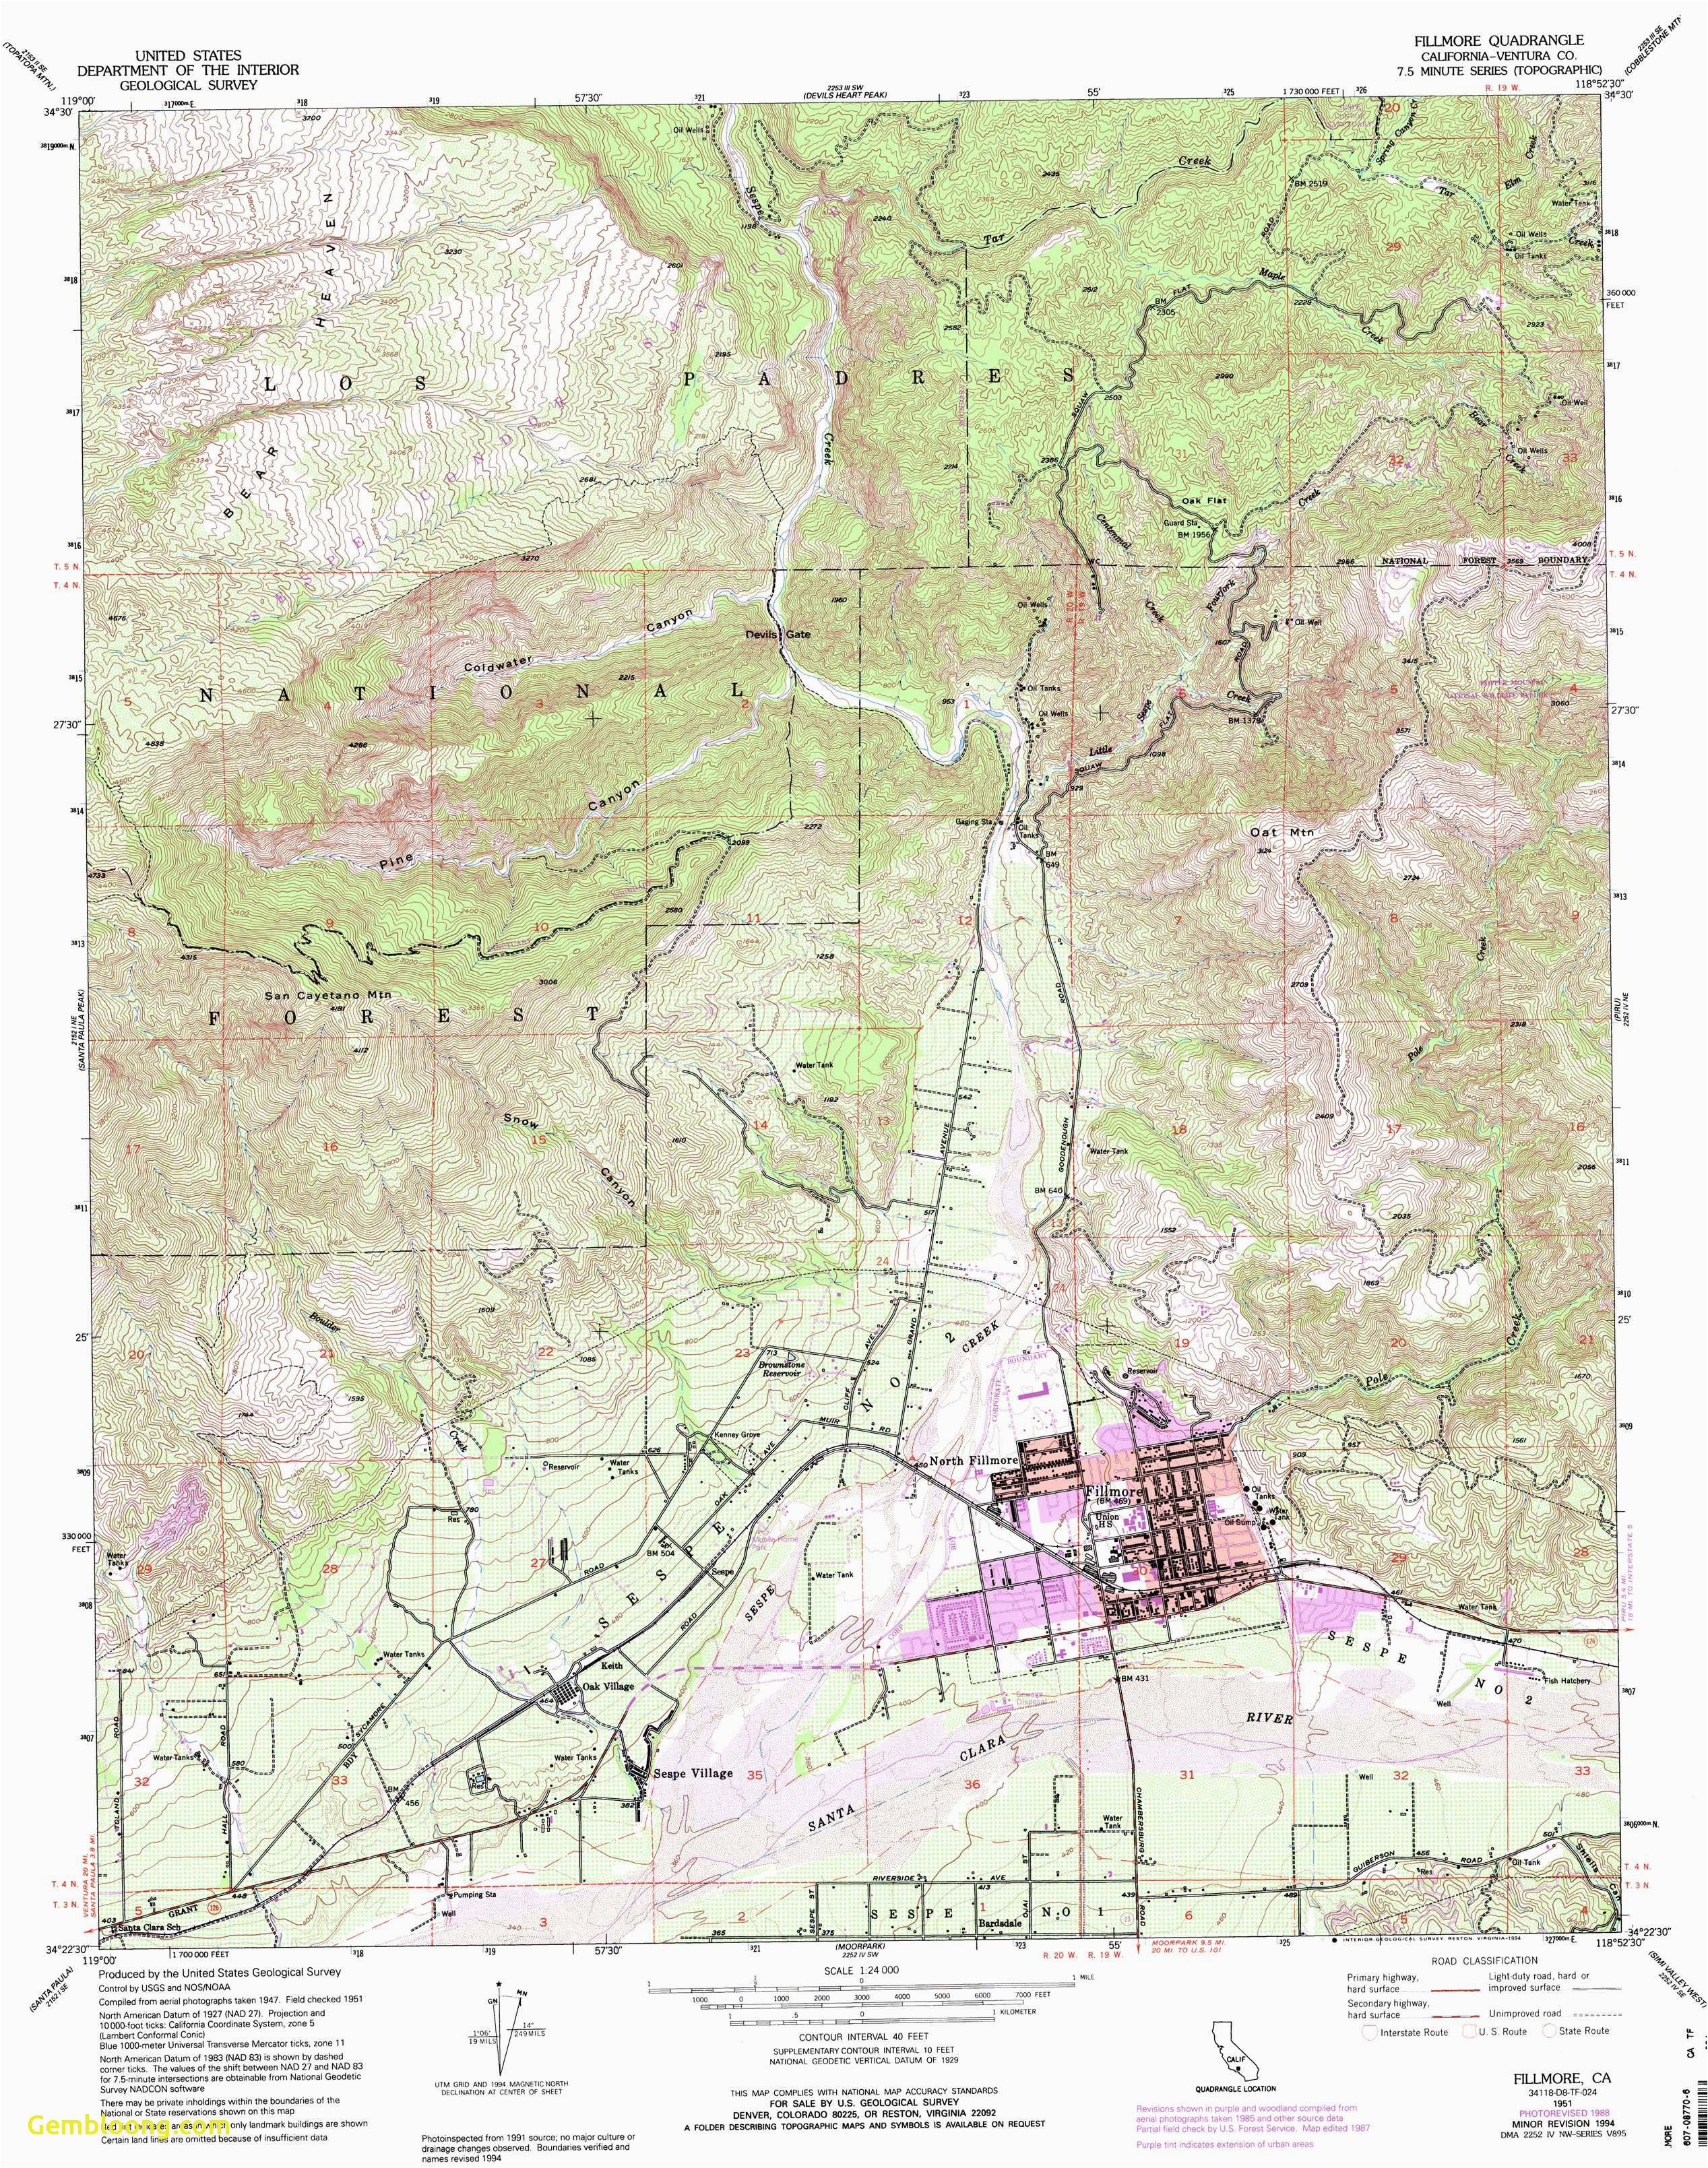 wildfire location map in us wildfire risk map fresh map current